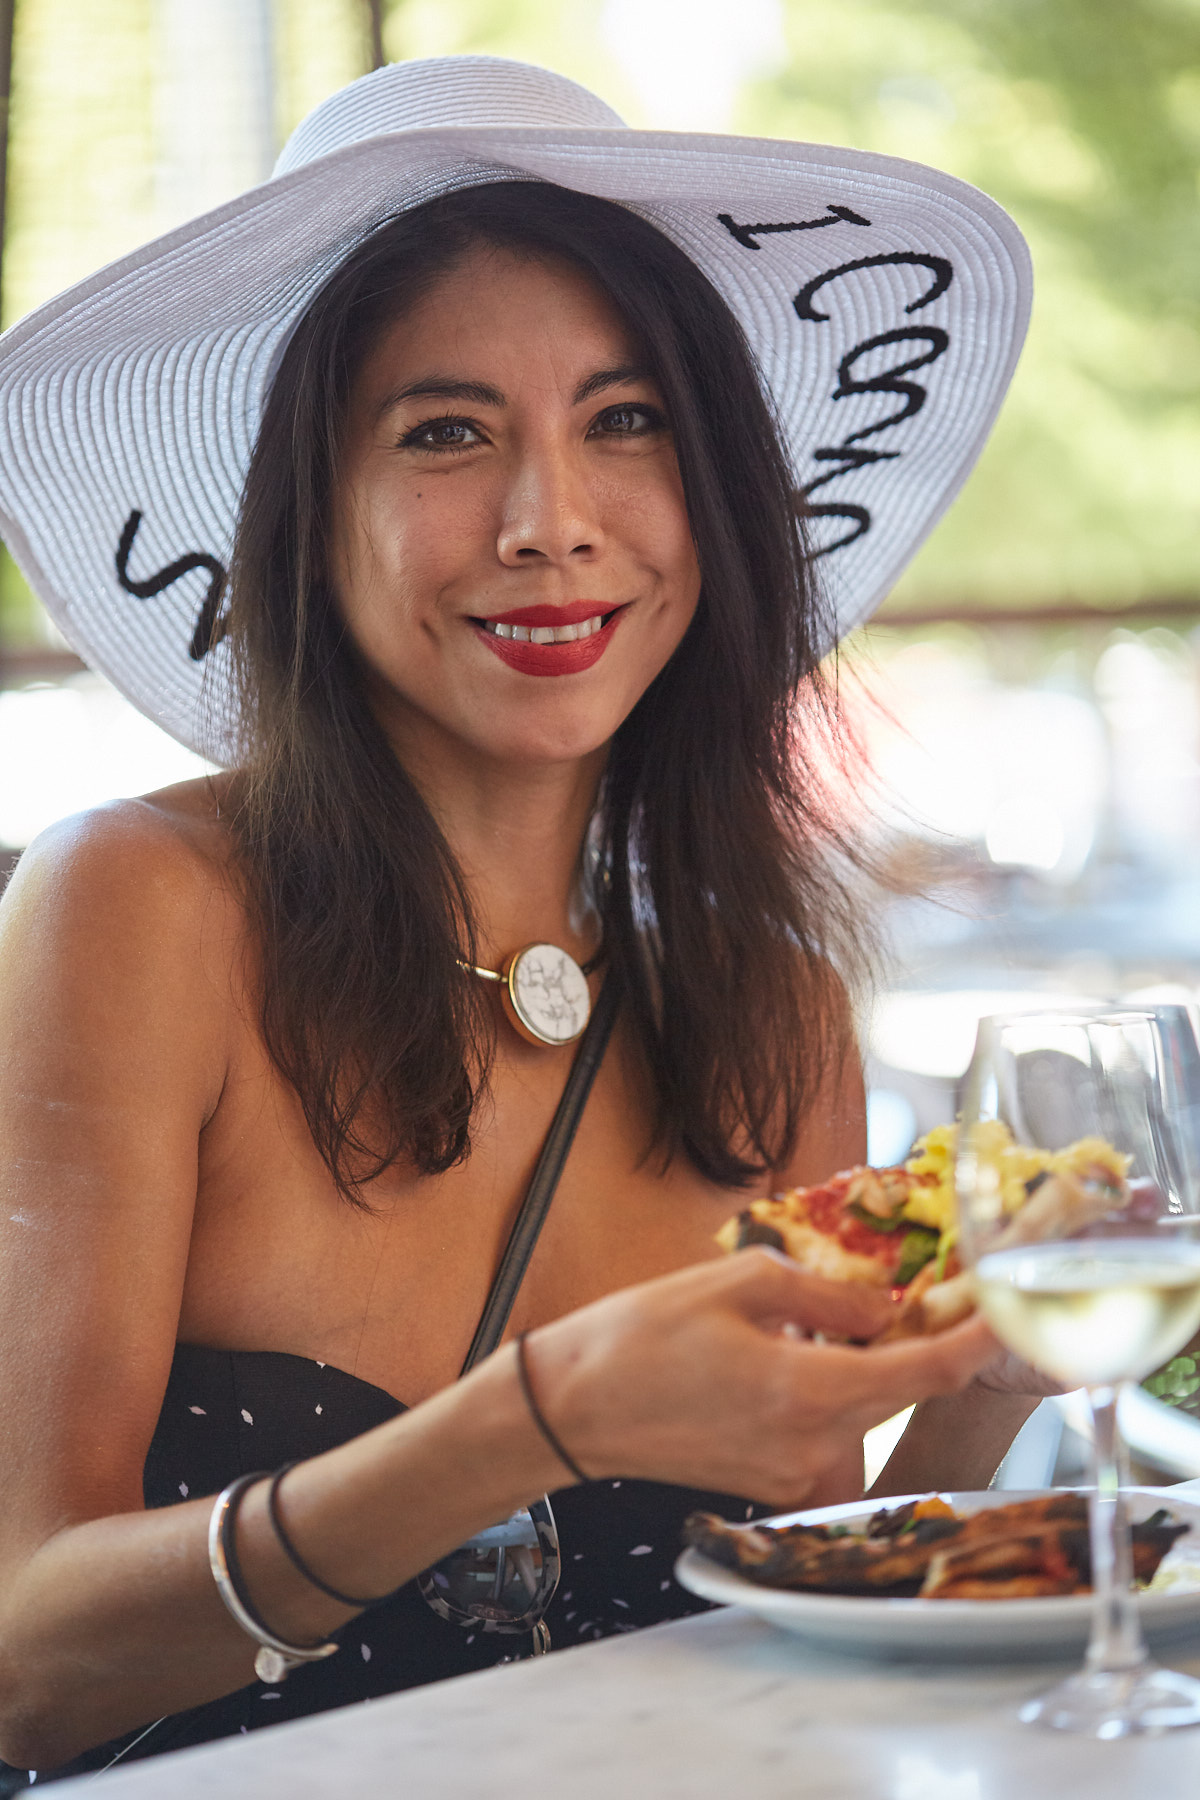 A guest enjoying herself at a Live Fire Pizza Oxbow Market event.